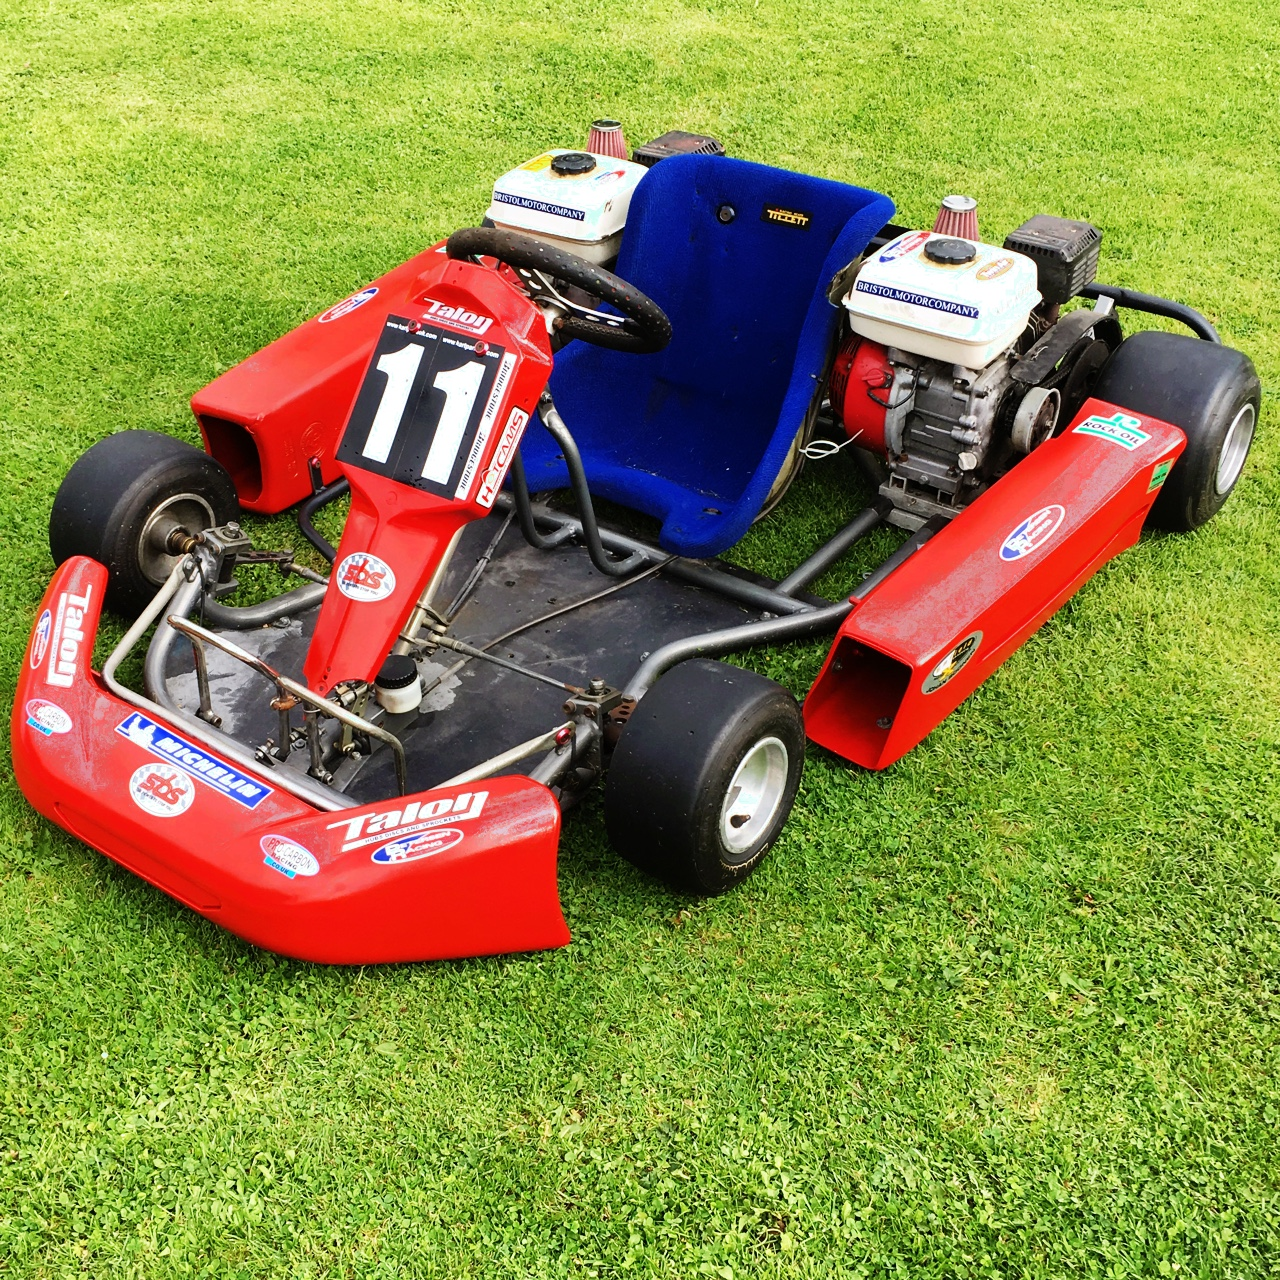 Go-kart customised This client came to us with a    - Depop